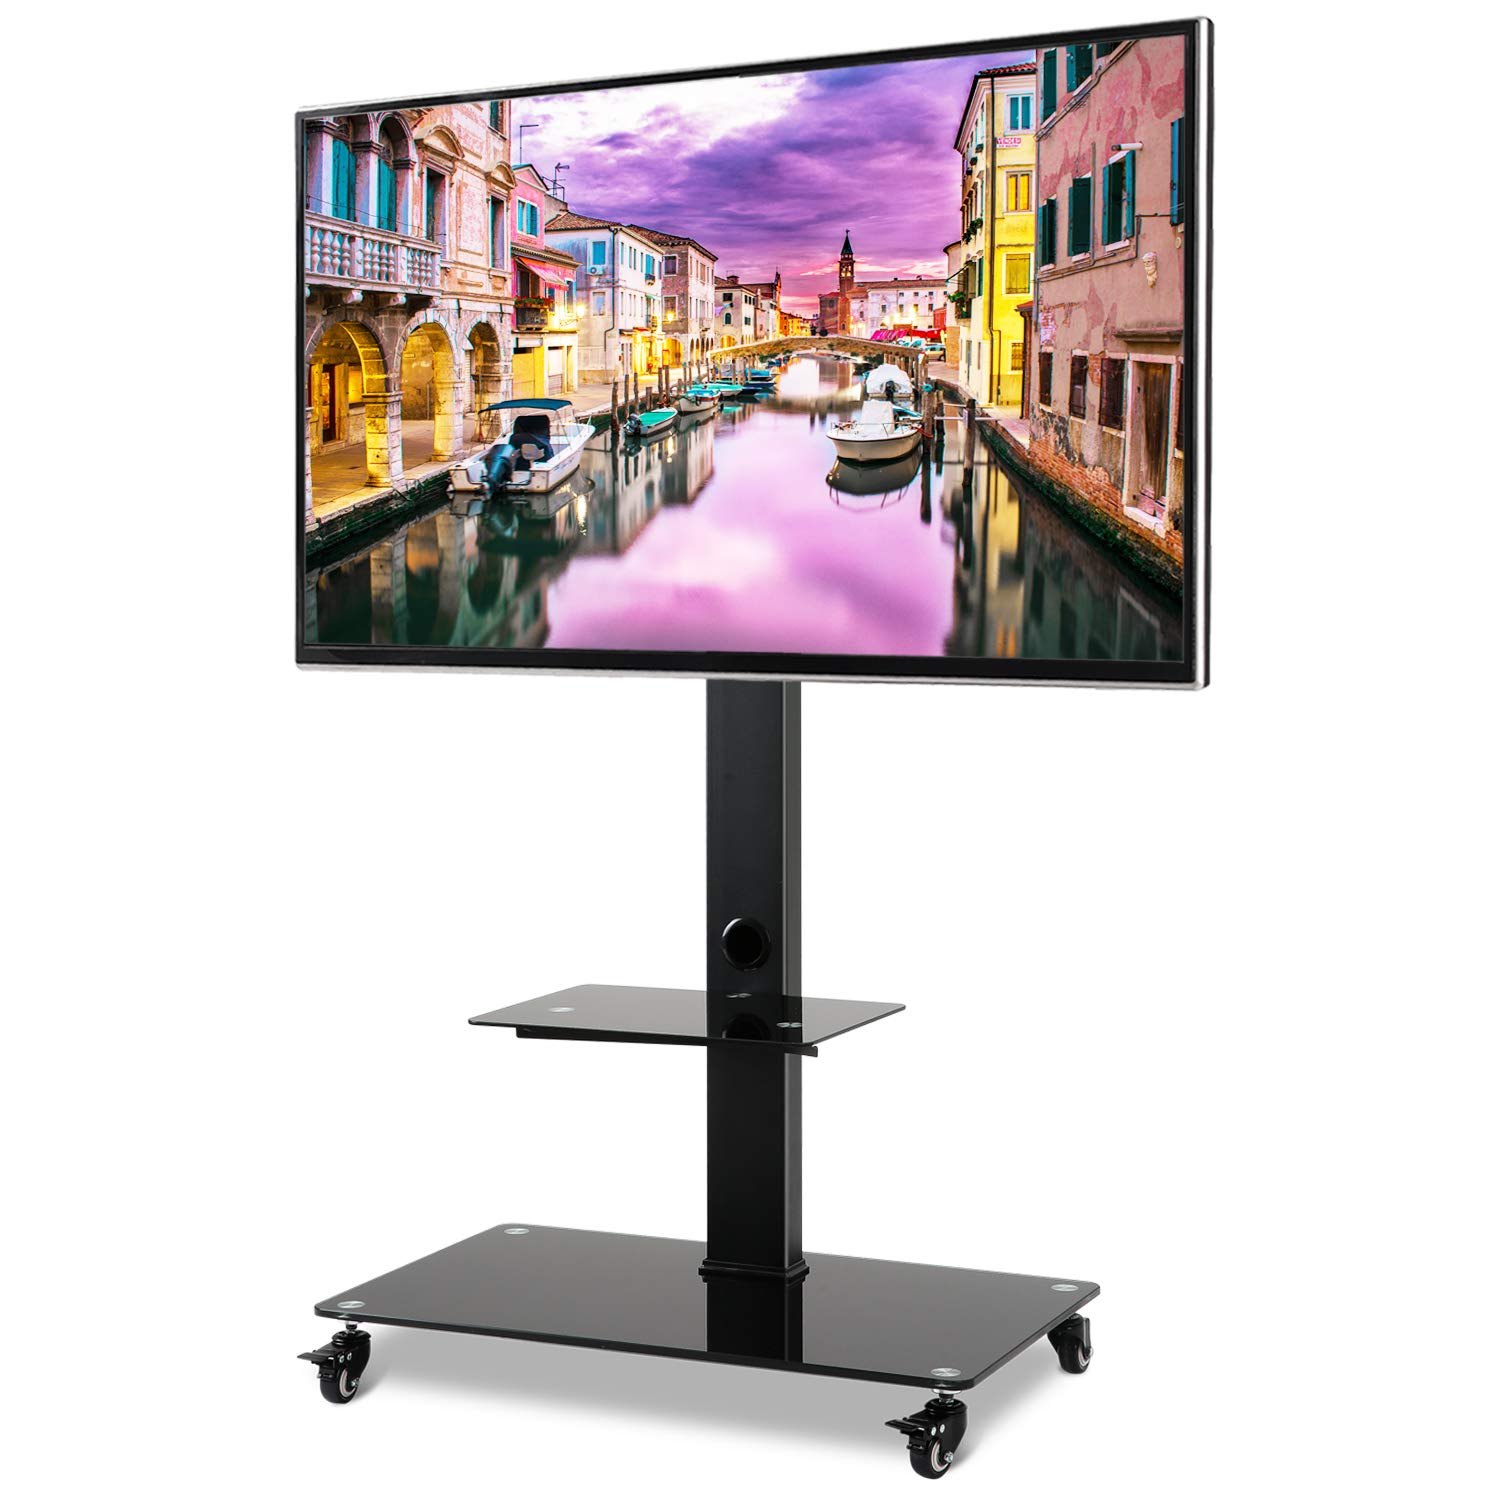 Rolling Moblile TV Stand Cart with Audio Shelf and Wheels, for 32 37 42 46 50 55 60 65 inch LCD LED OLED QLED Flat Panel and Curved TVs